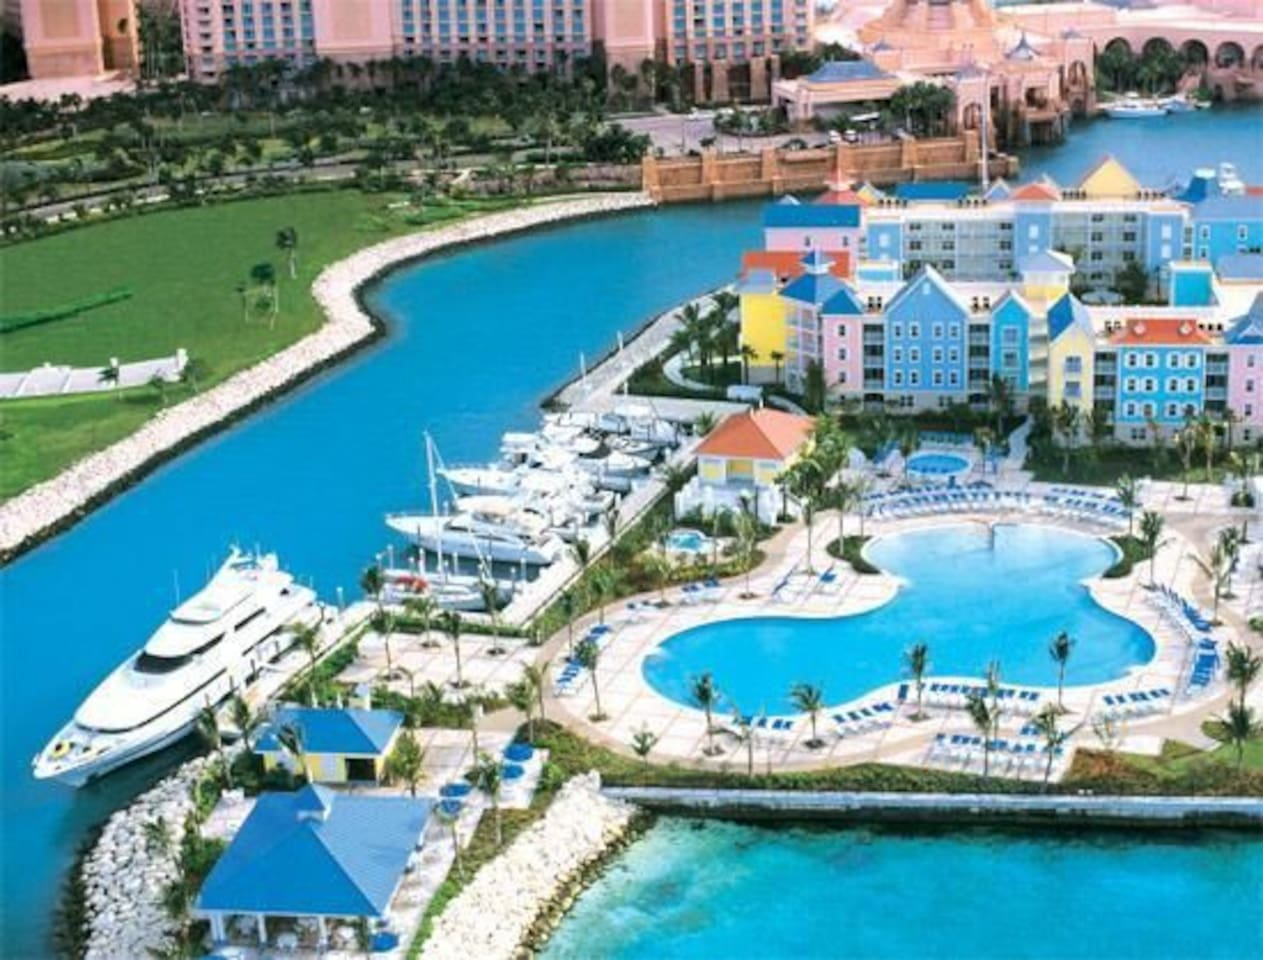 Aerial shot of Harborside at Atlantis showing how close it is to the Atlantis hotel